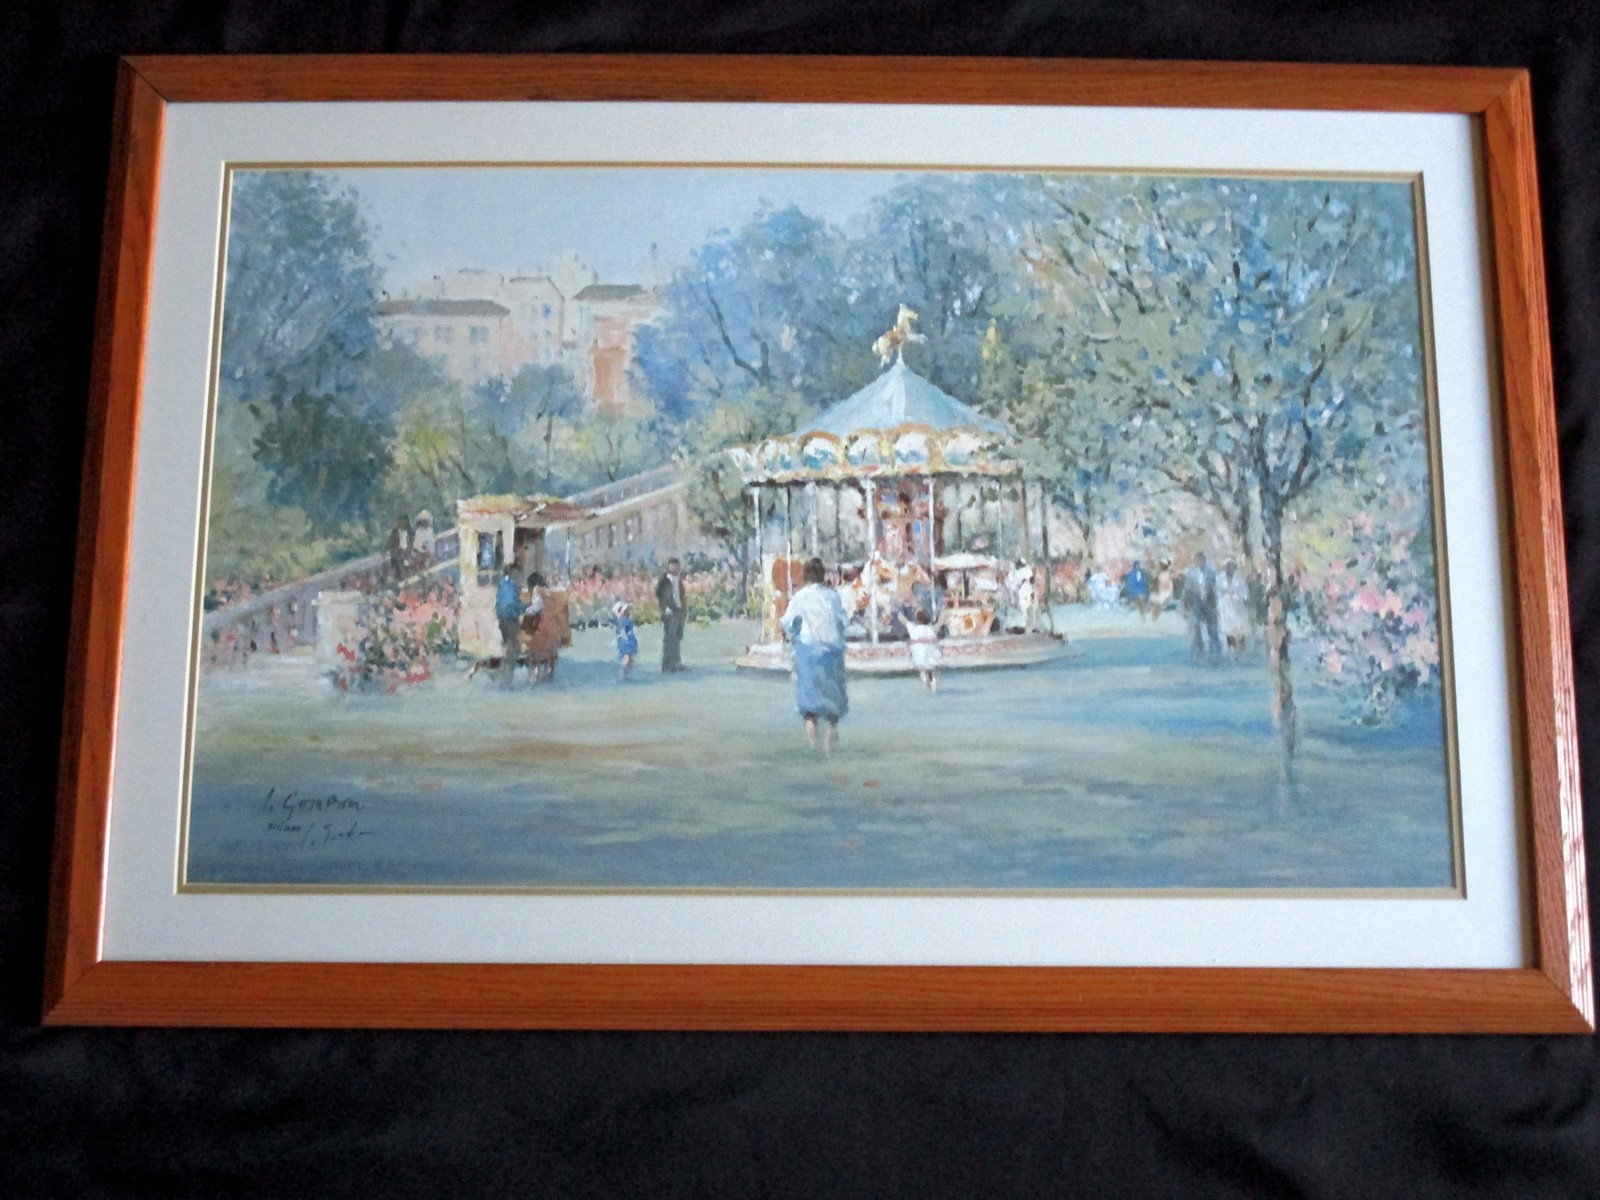 L. Gordon Sunny Afternoon Signed  Numbered 311/1250 Framed Matted Litho Print